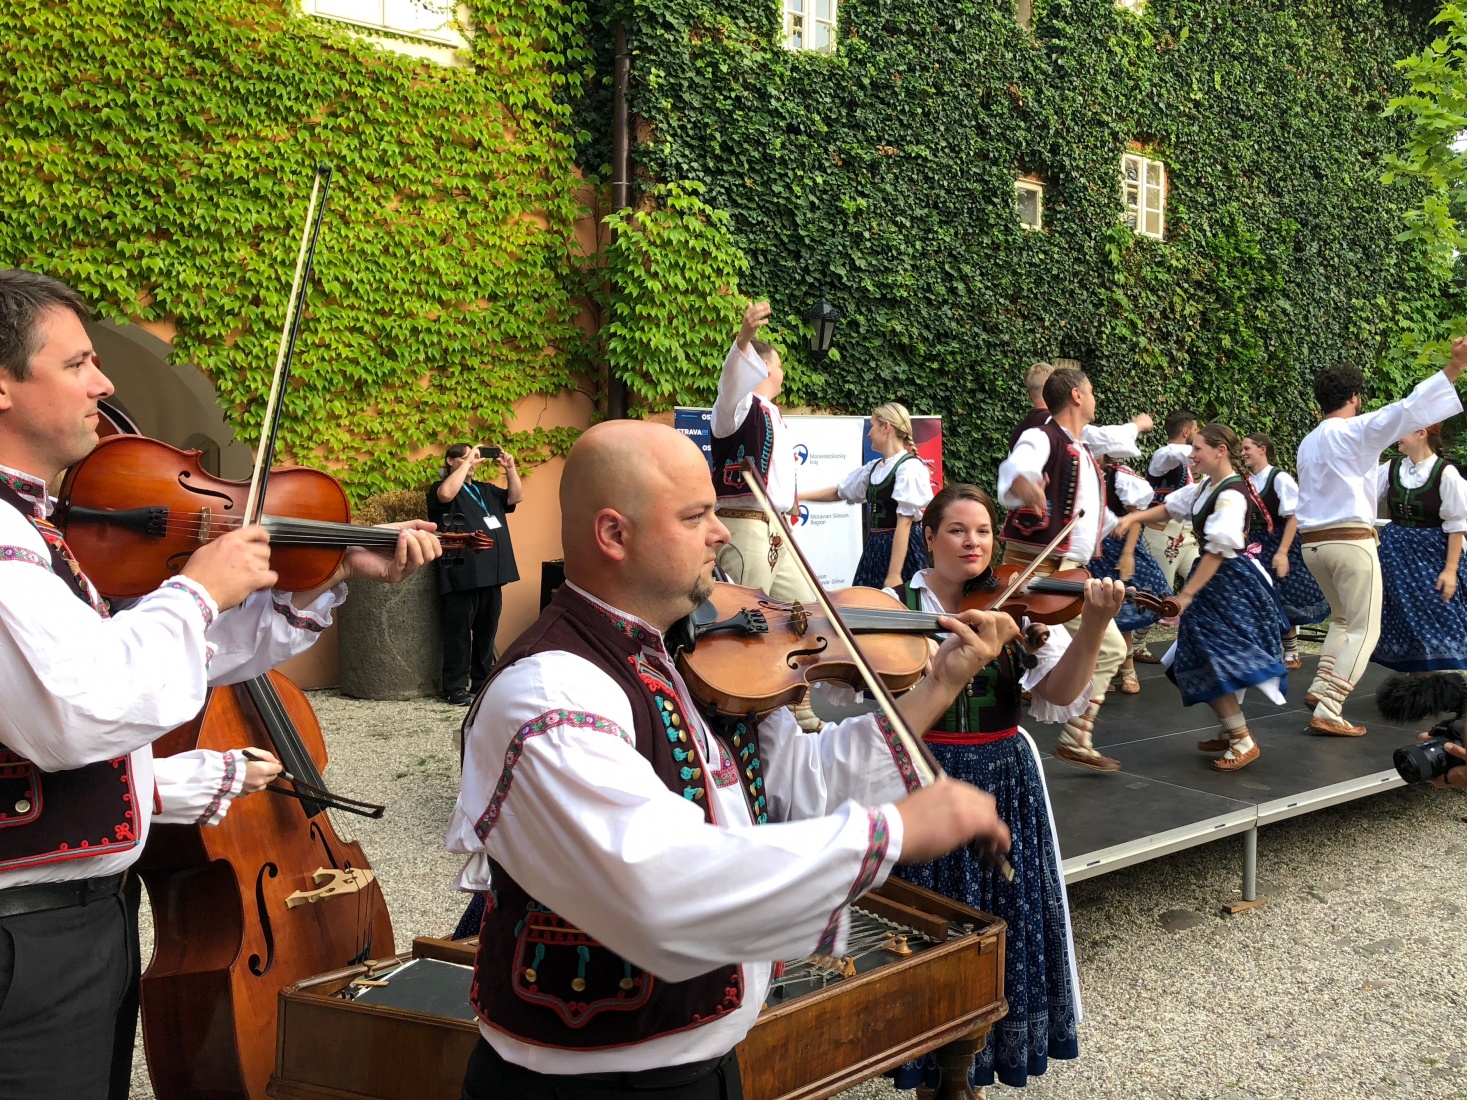 The opening party featured some Moravian-Silesian folk music and dancers, at TBEX Europe 2018 presentation, in Ostrava, Czech Republic.